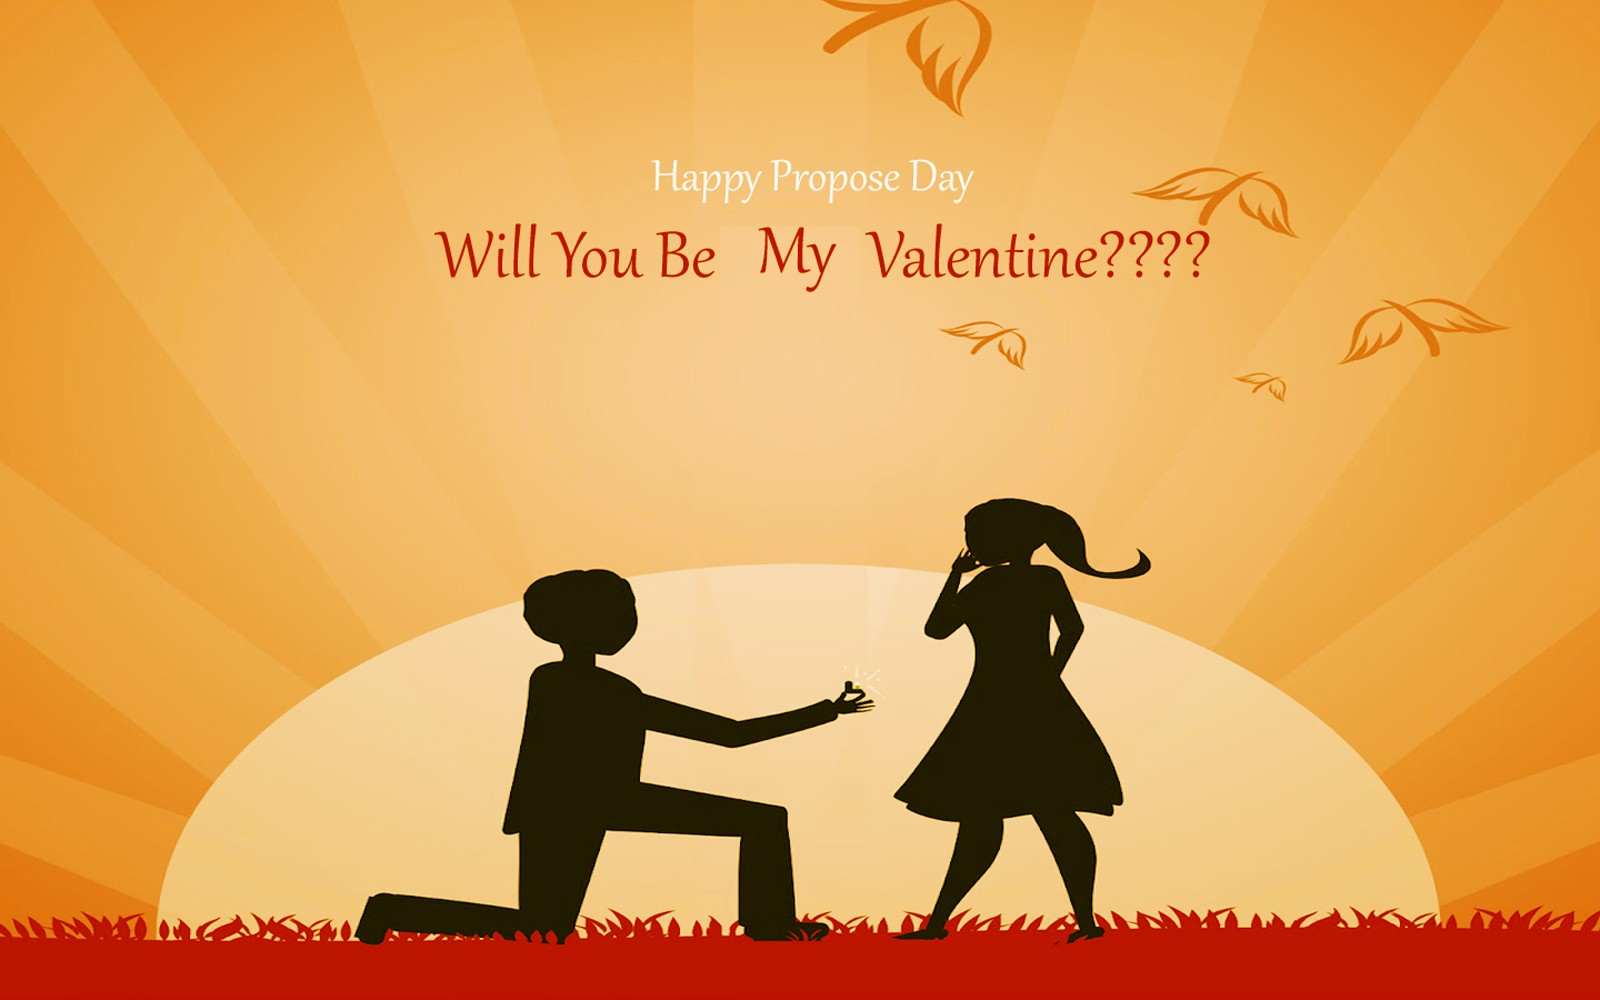 Propose Day Photos, Images, Quotes, SMS and Wishes